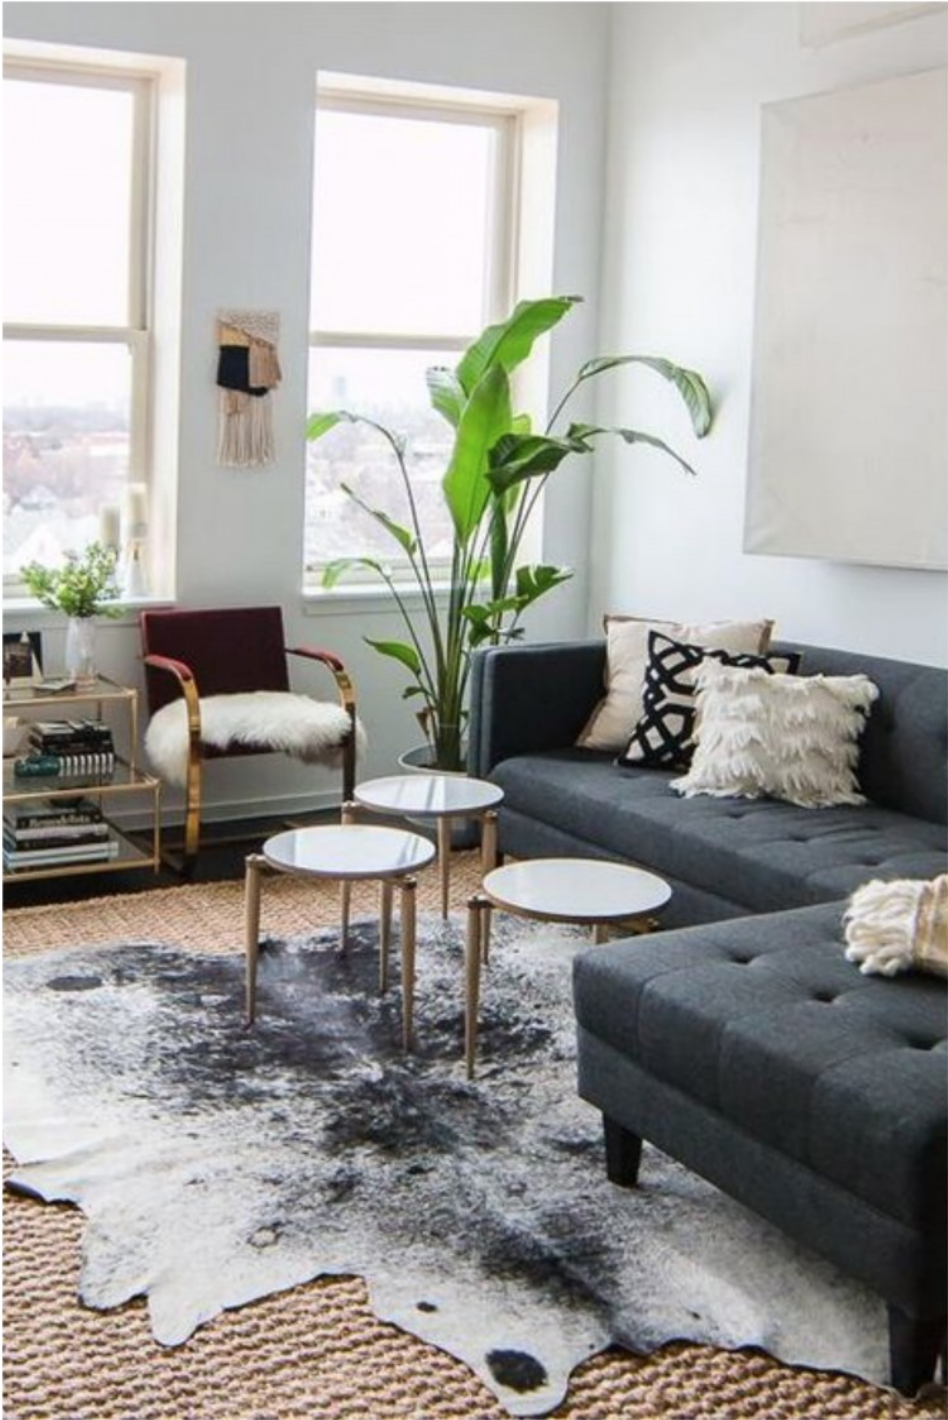 Pin by Lucie Ling on greens n' reads | Rugs in living room ...